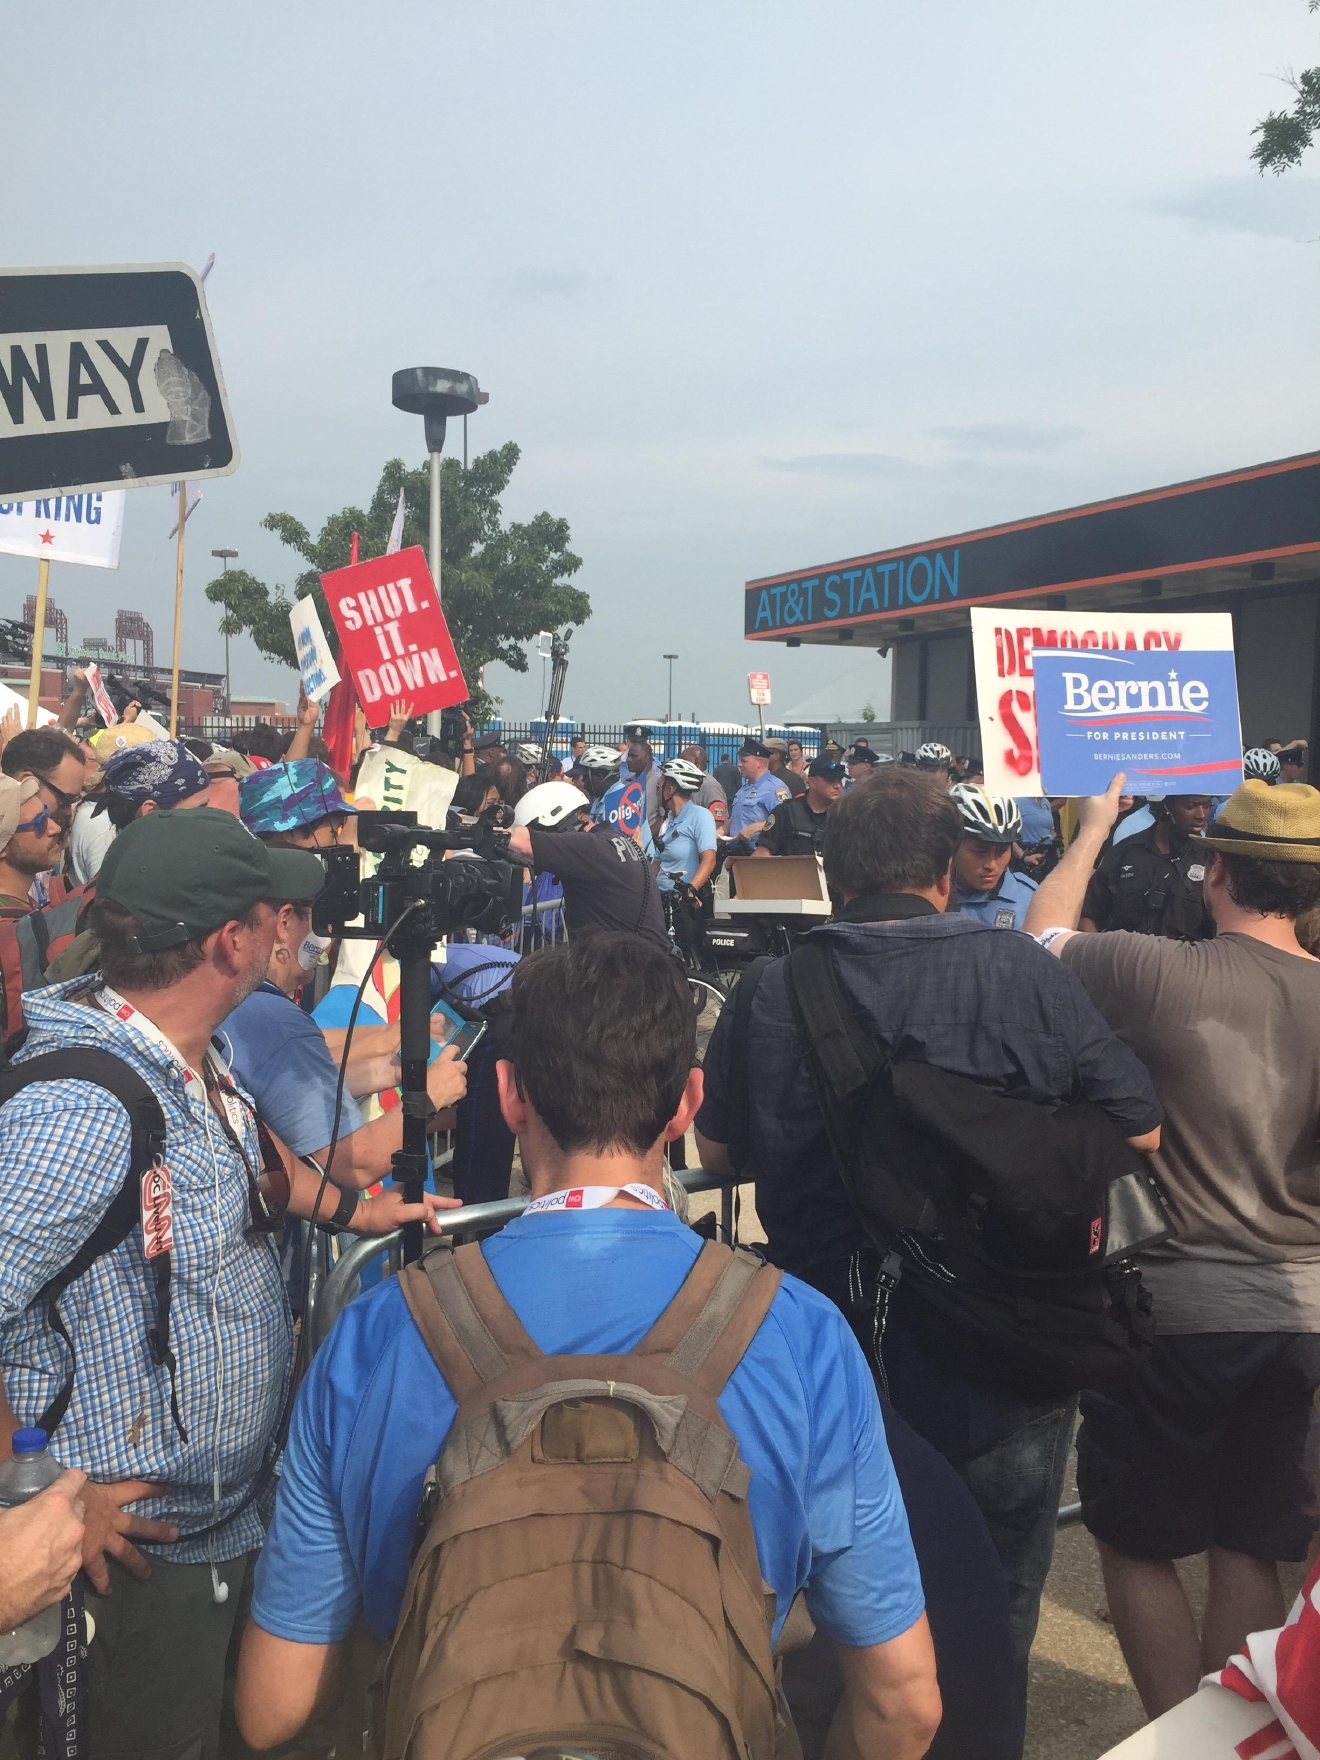 Large crowds outside of the Democratic National Convention. (Amanda Ota, Sinclair Broadcast Group)